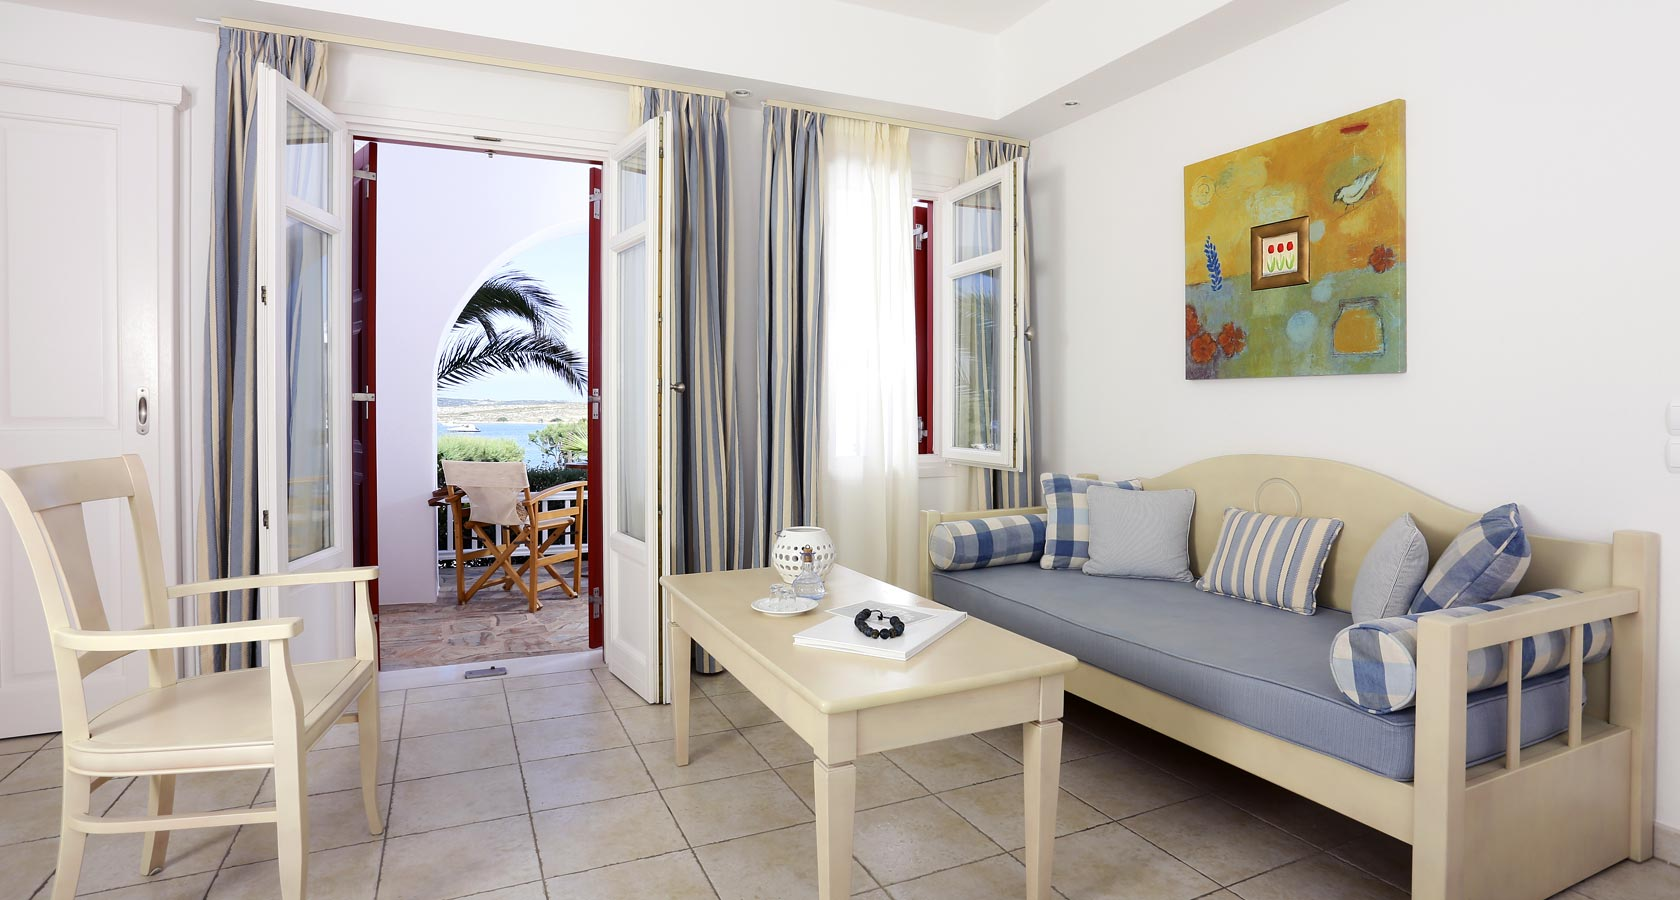 Paros Accommodation in Junior Suites - Stelia Mare Hotel Naoussa Paros Greece